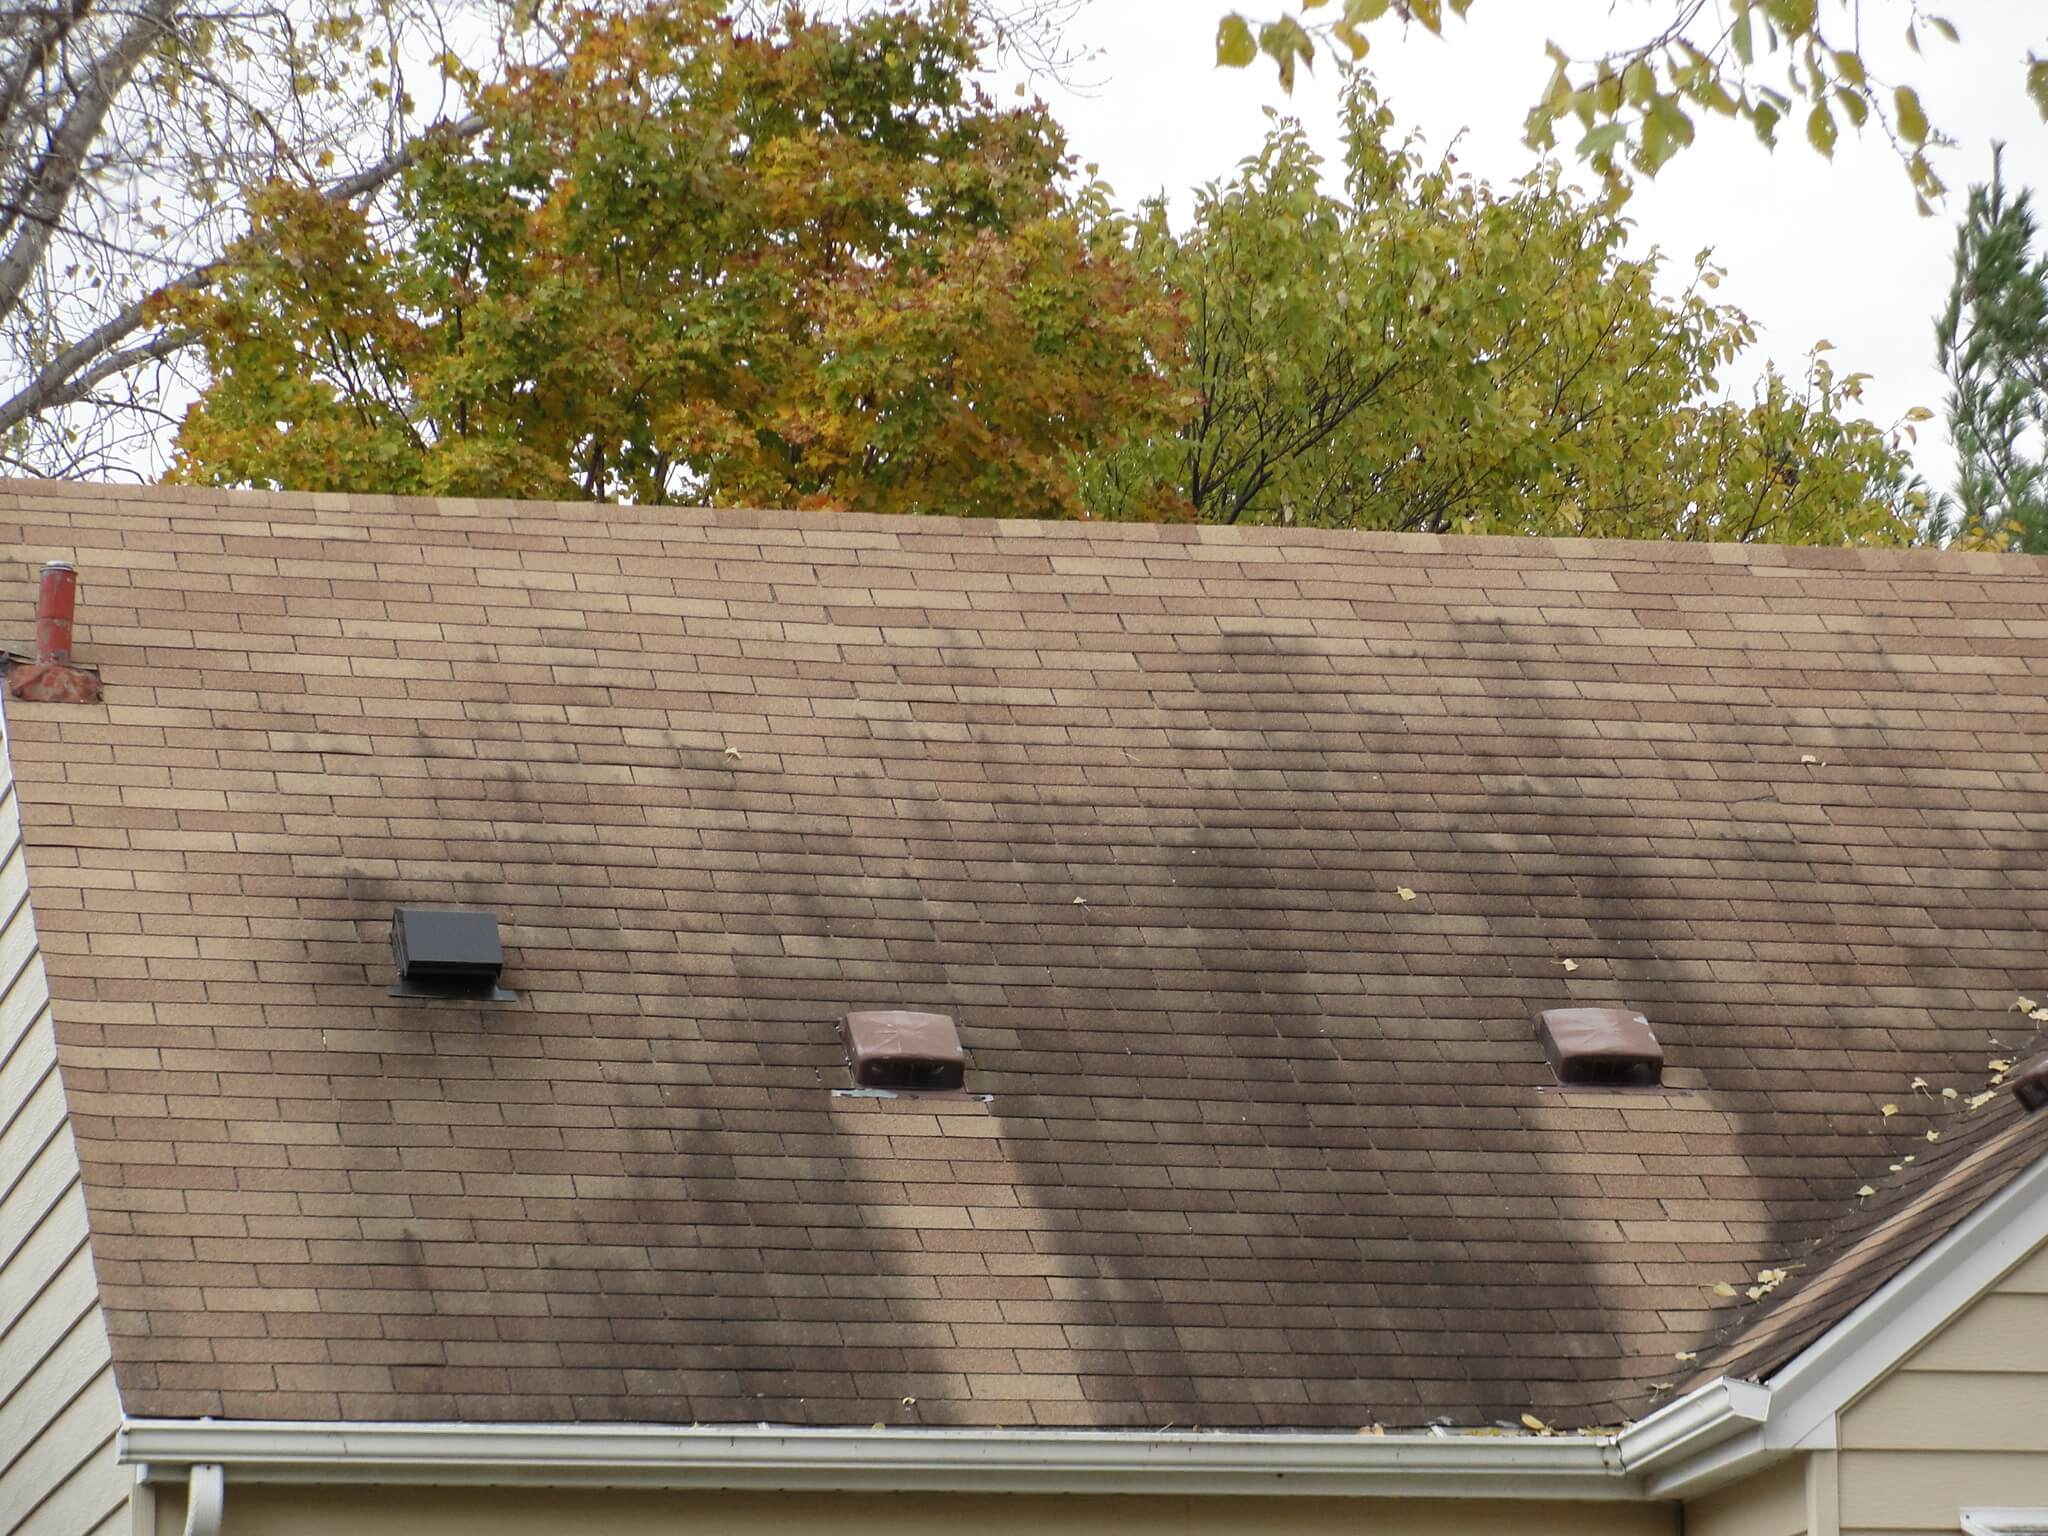 Zinc Strips Prevent Moss Growth On Roofs Algea Top Black The Roof Stays Minty Fresh Zincy Below Vents Because Every Time It Rains A Small Bit Of Gets Washed Off Metal Which Runs Down